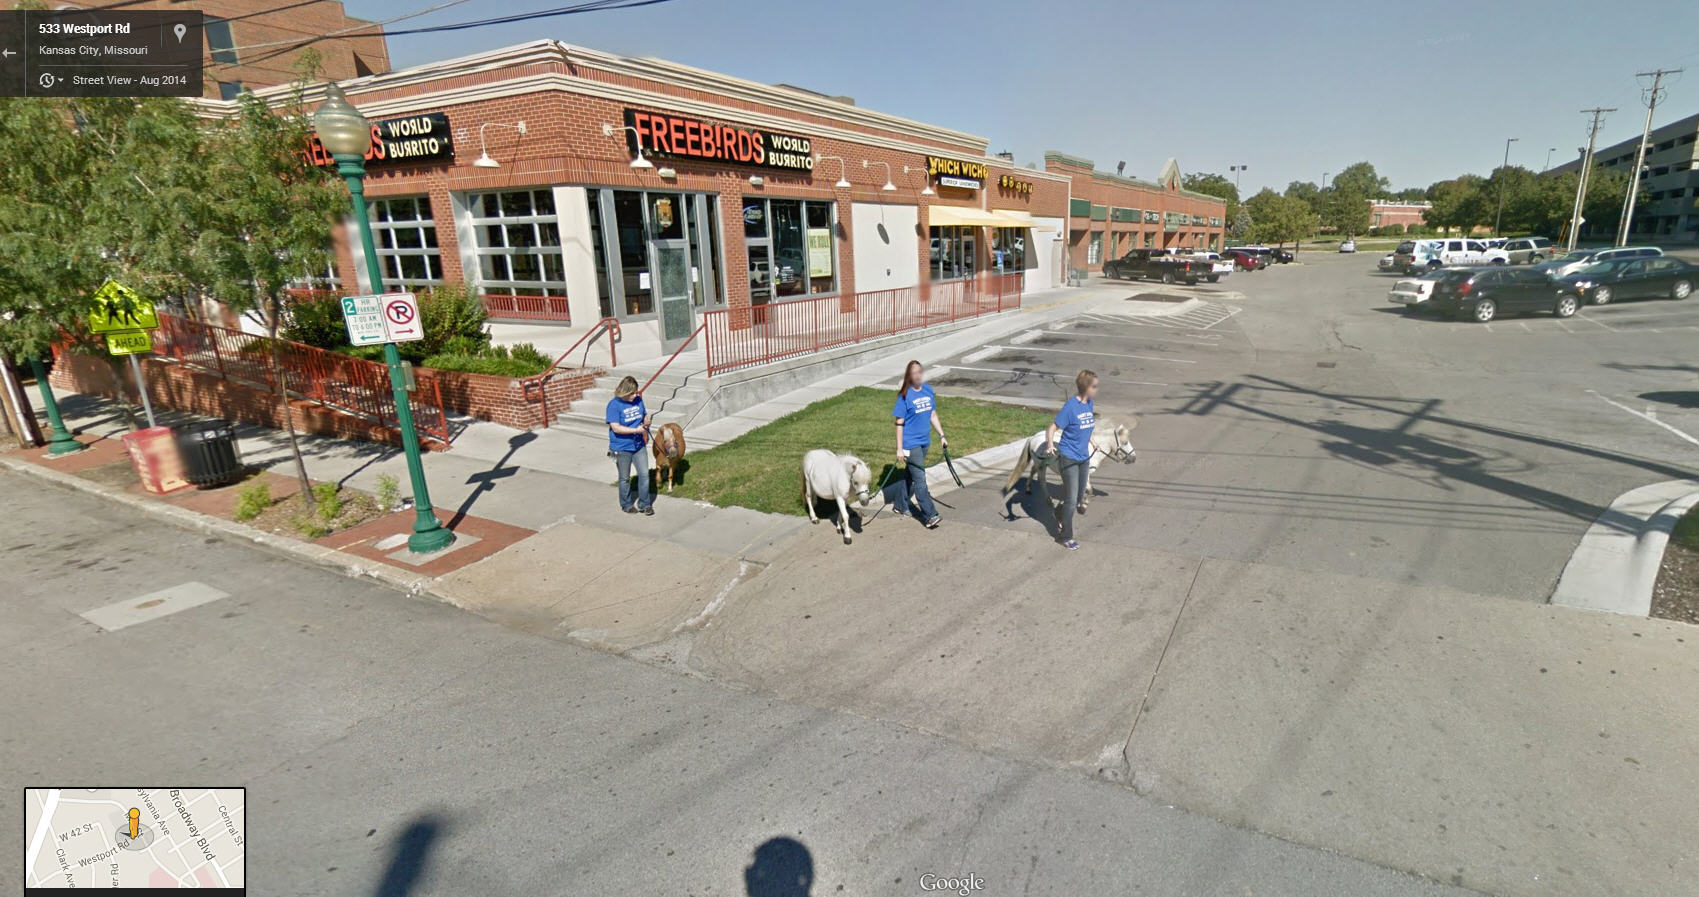 In Missouri, they take ponies for a walk.